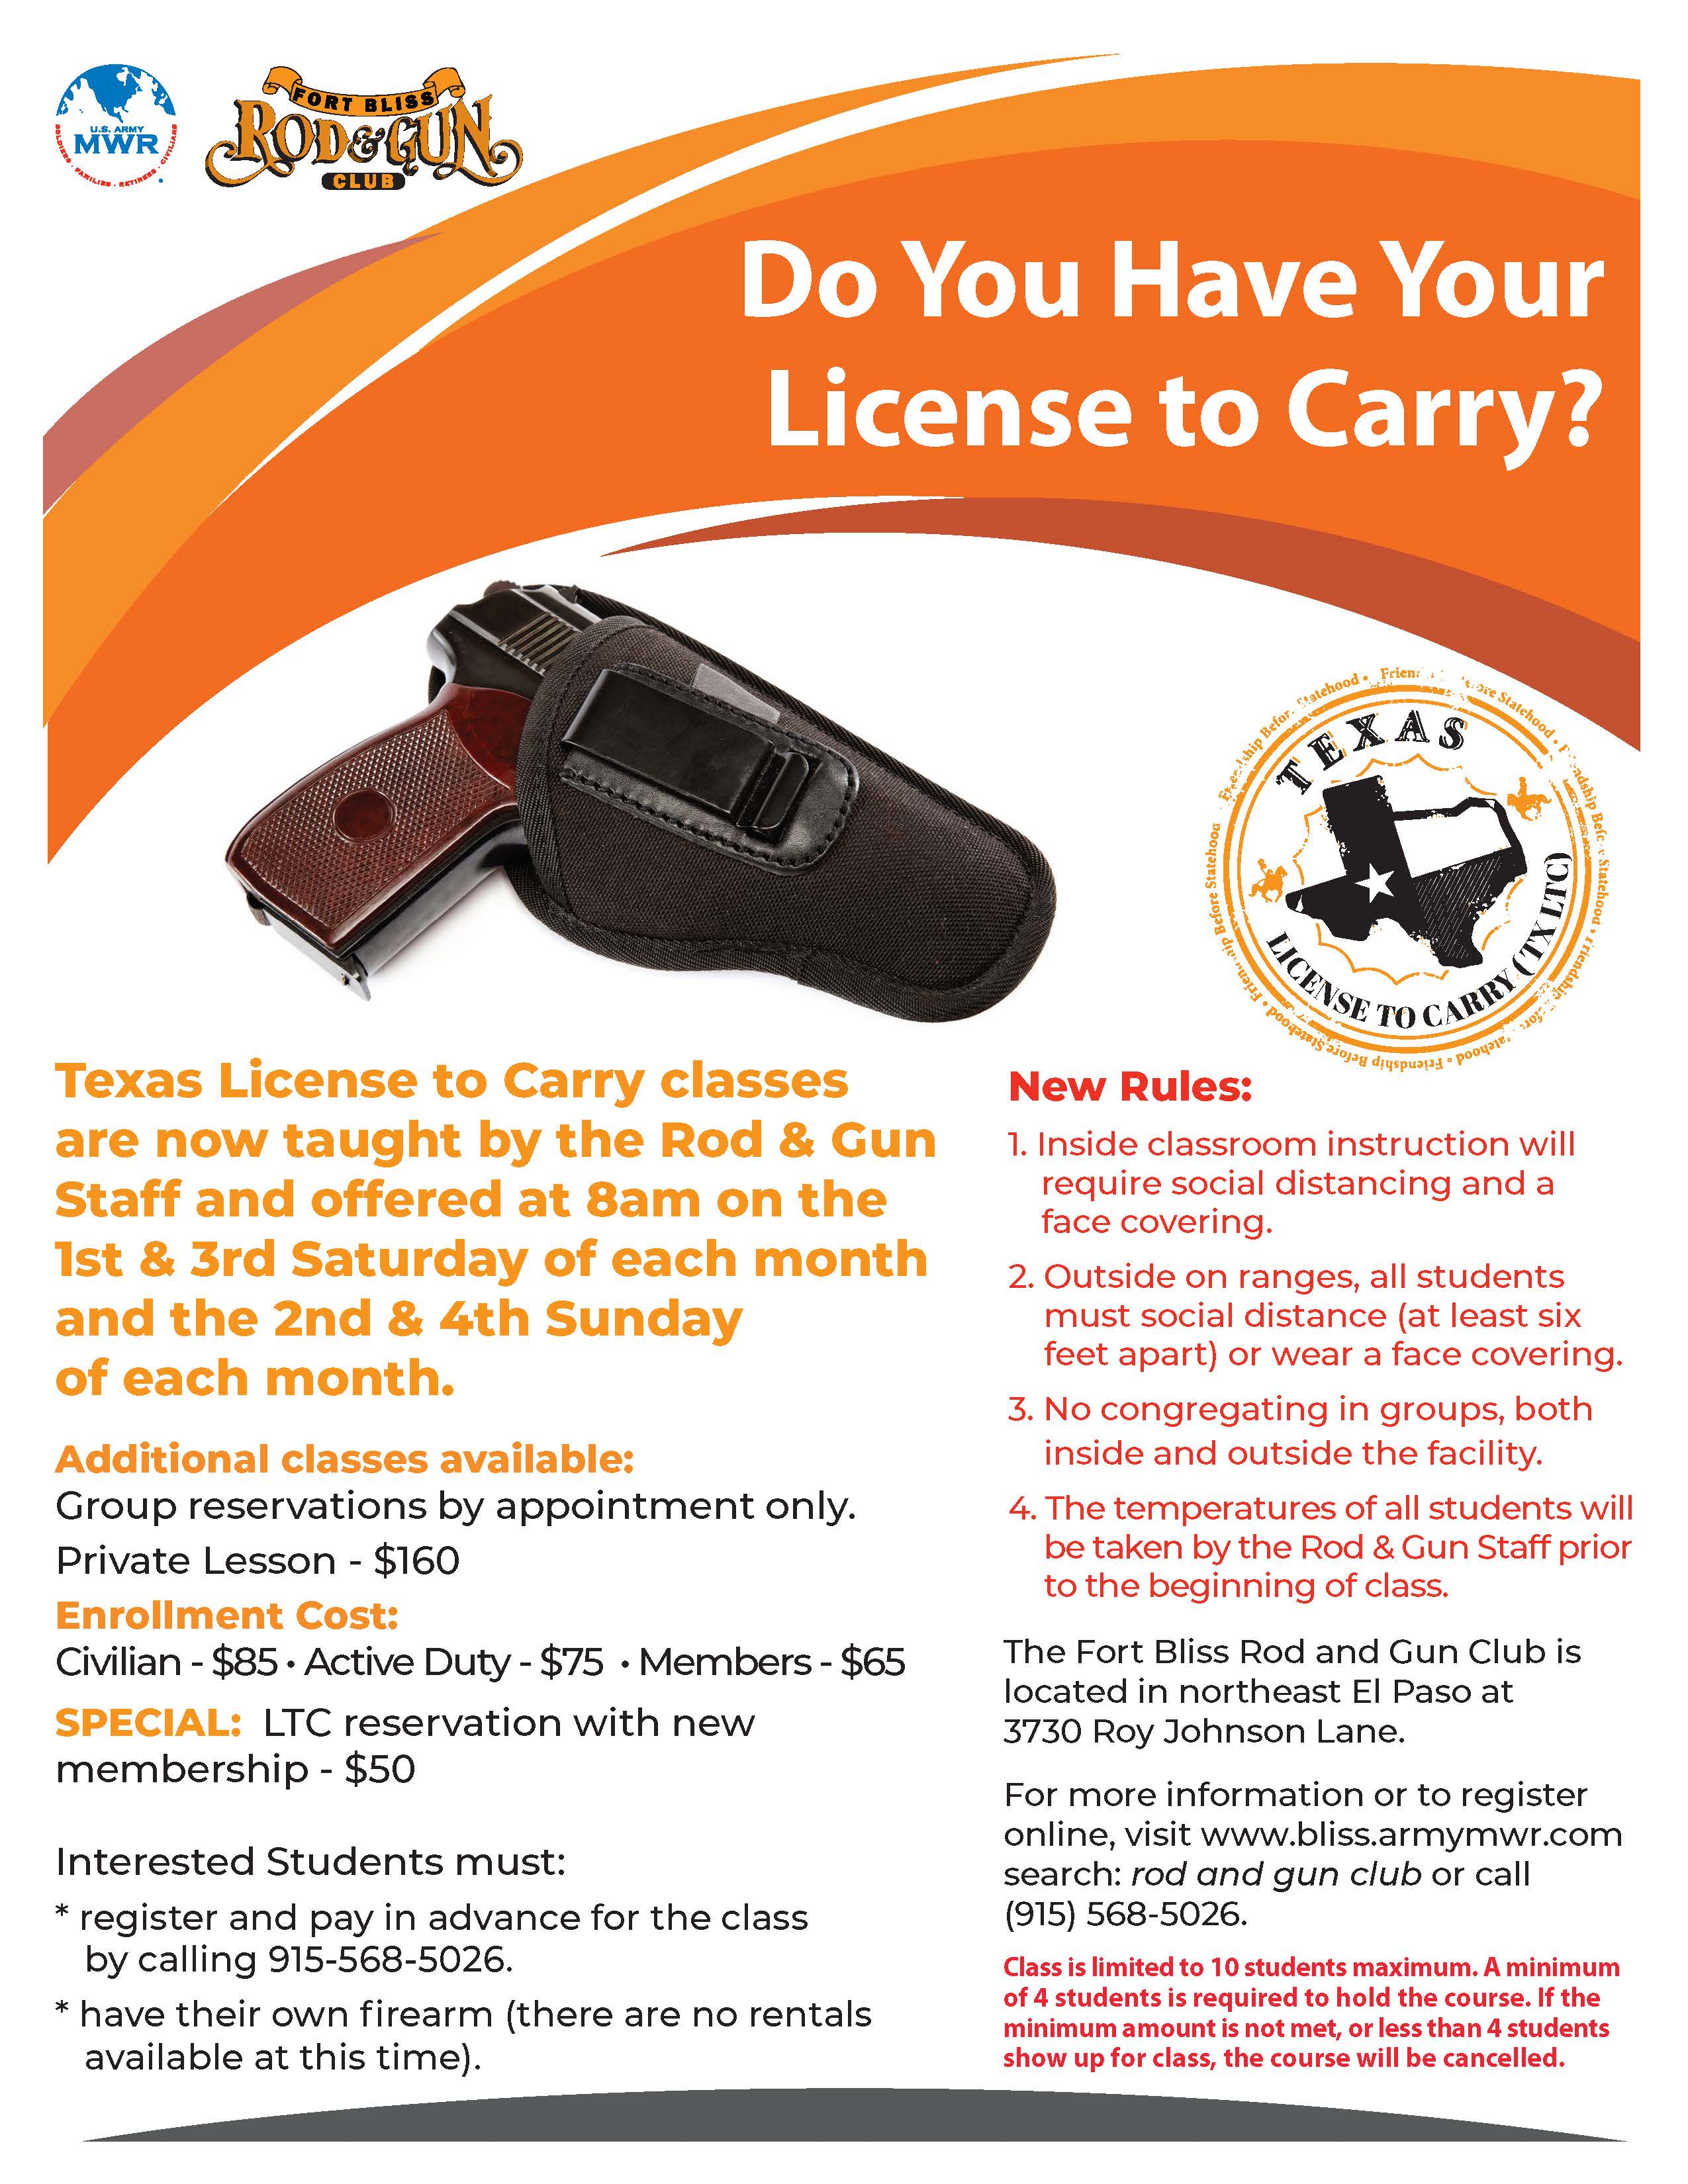 RAG_License2Carry2020.jpg